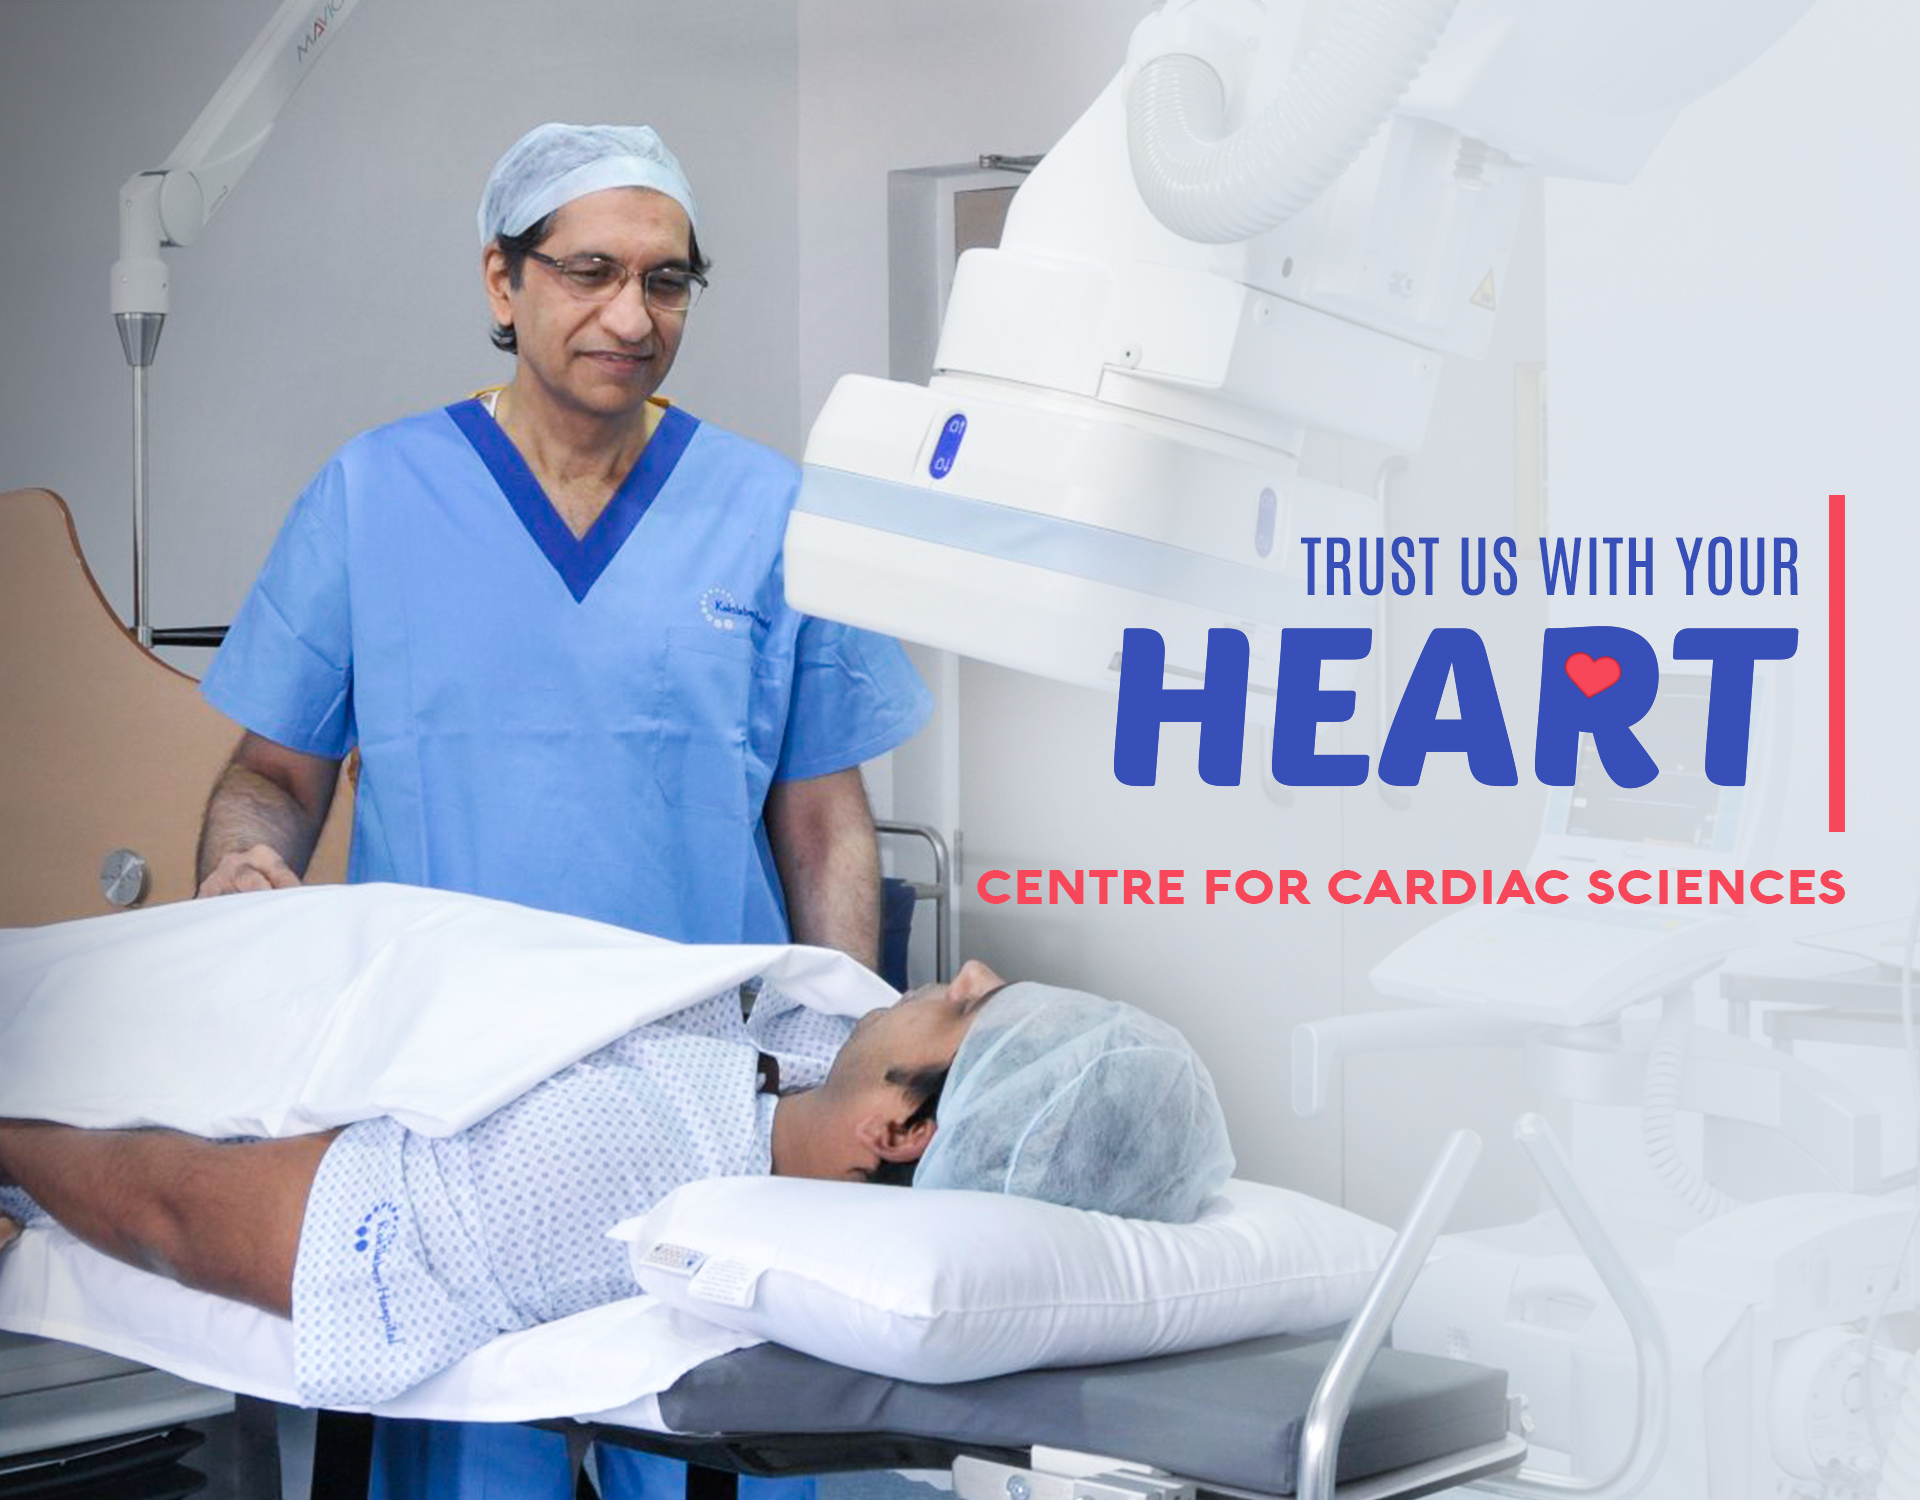 KDAH - Centre for Cardiac Sciences